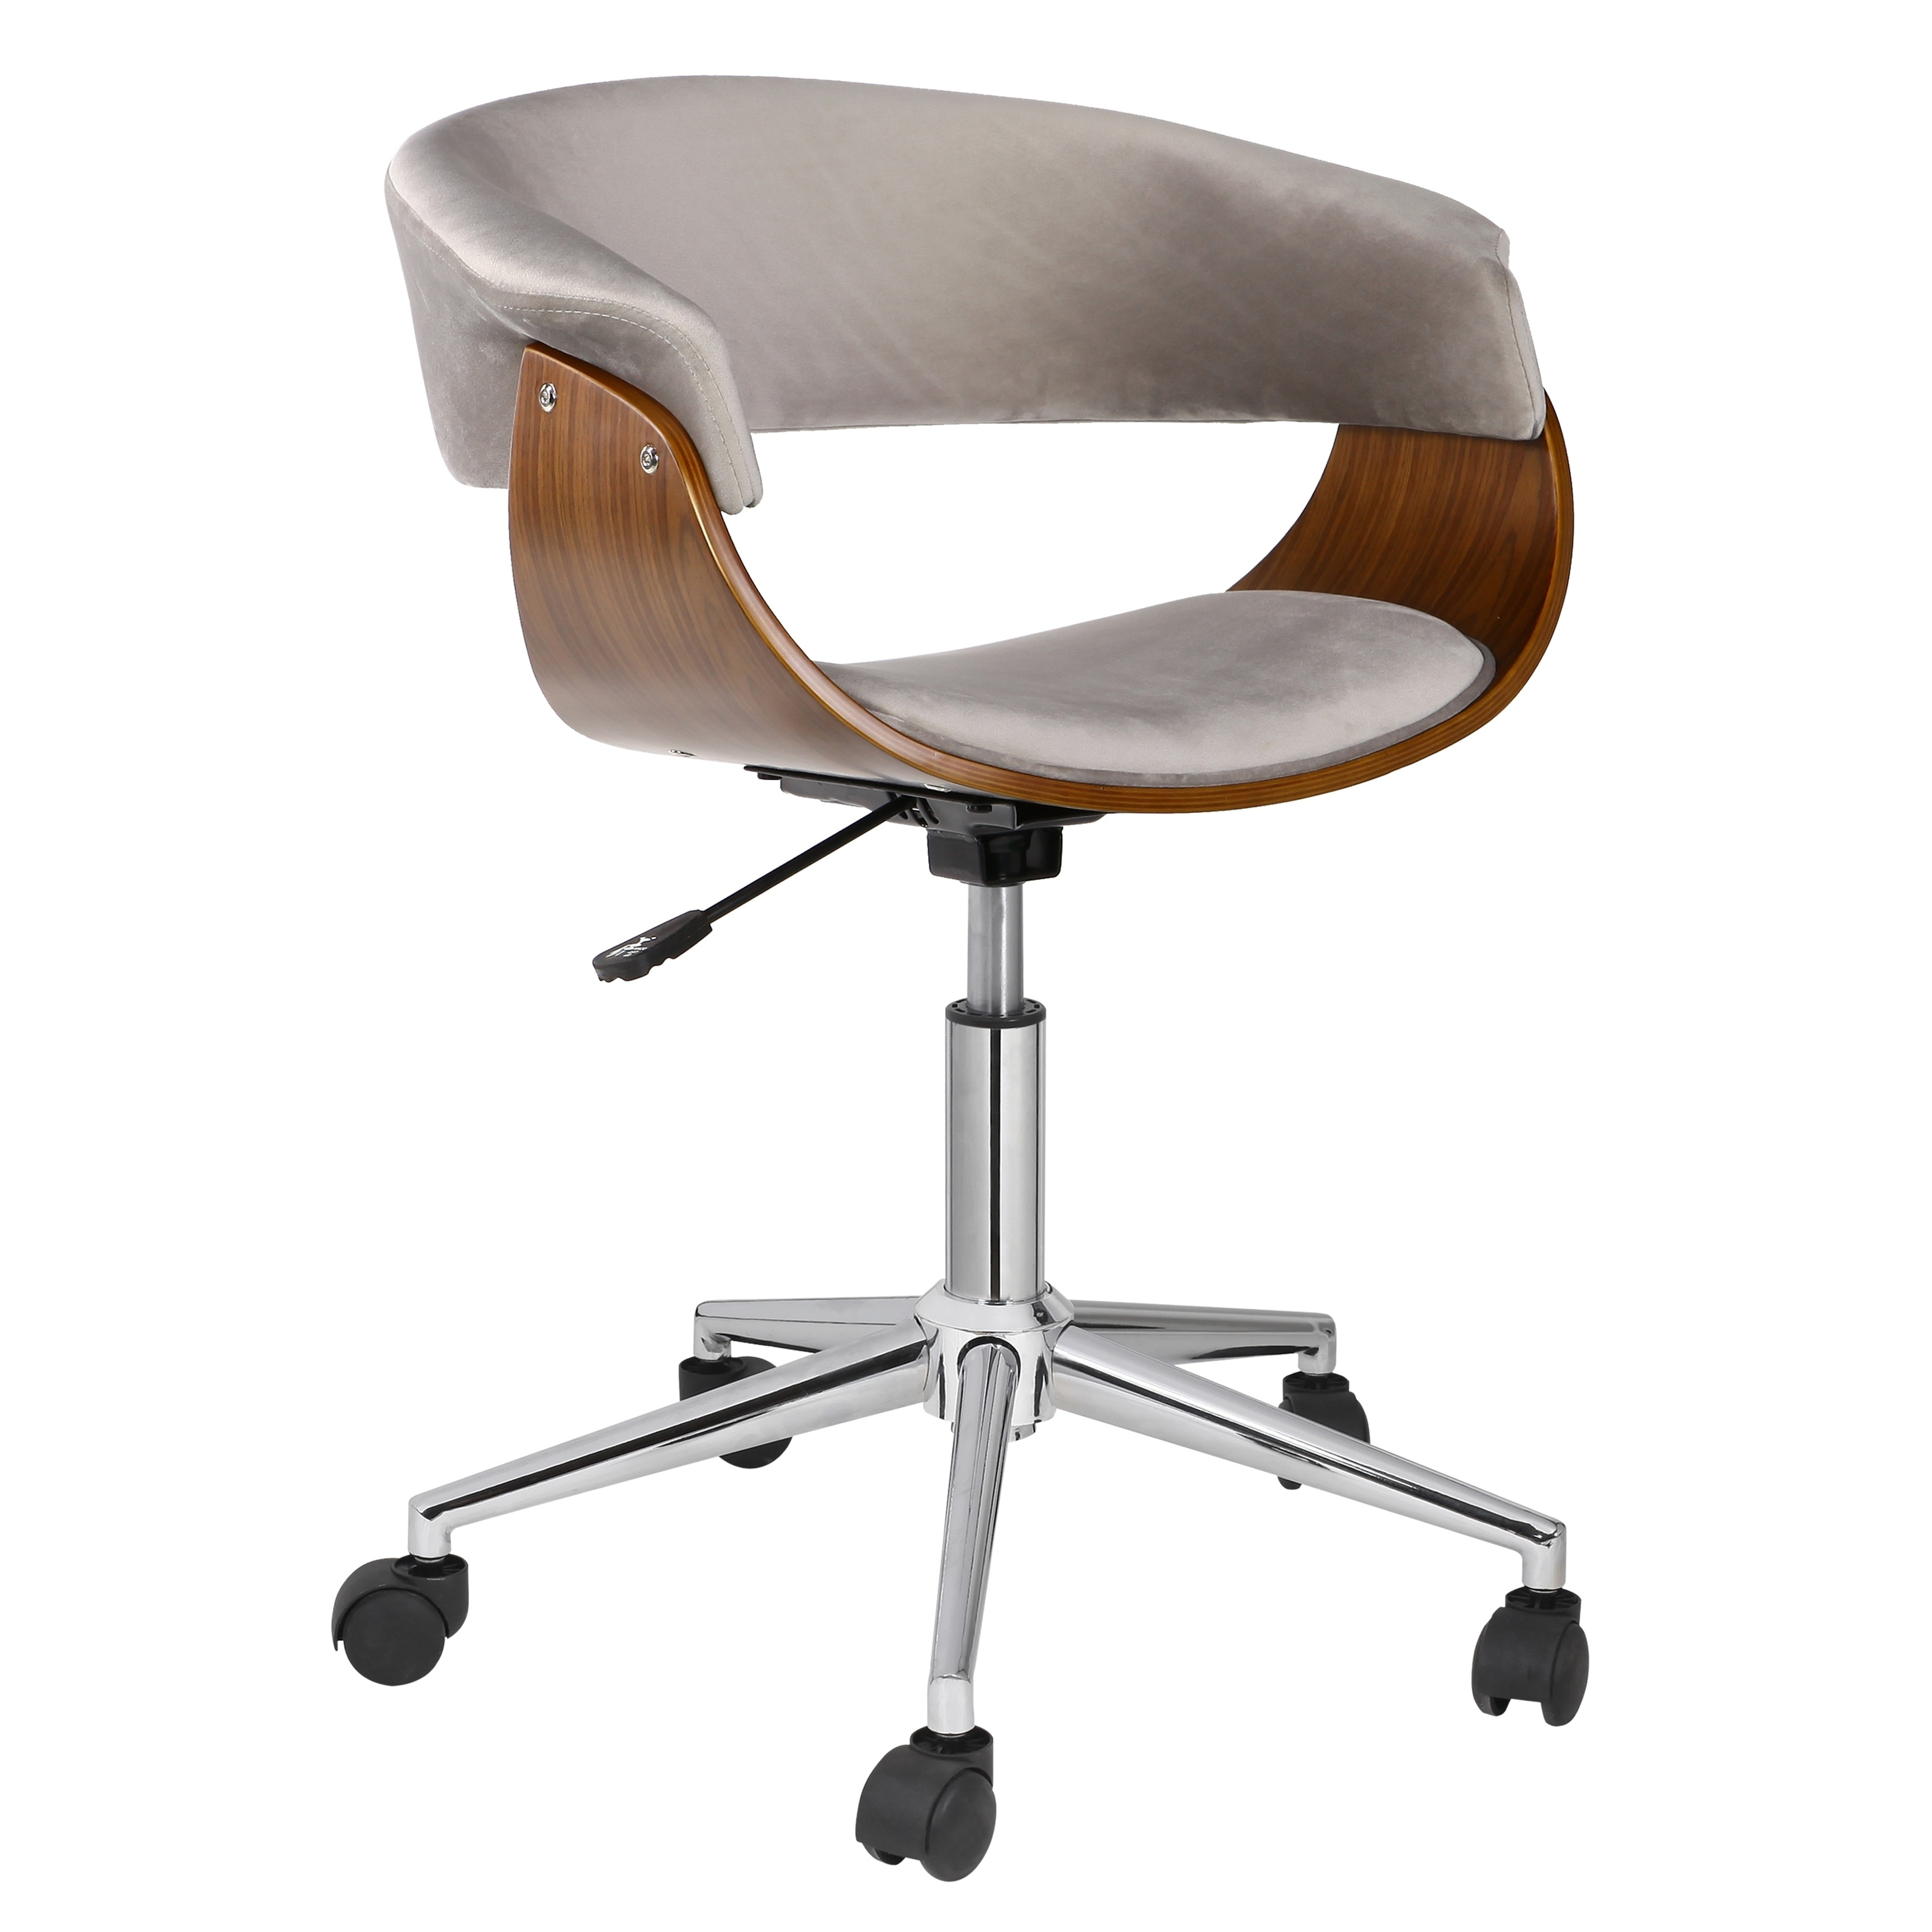 Porthos Home Isla Adjustable Office Chair With 360° Swivel, Suede Upholstery And 5-star Chrome Base With Roller Caster Wheels, Suitable for Studios And Small Offices